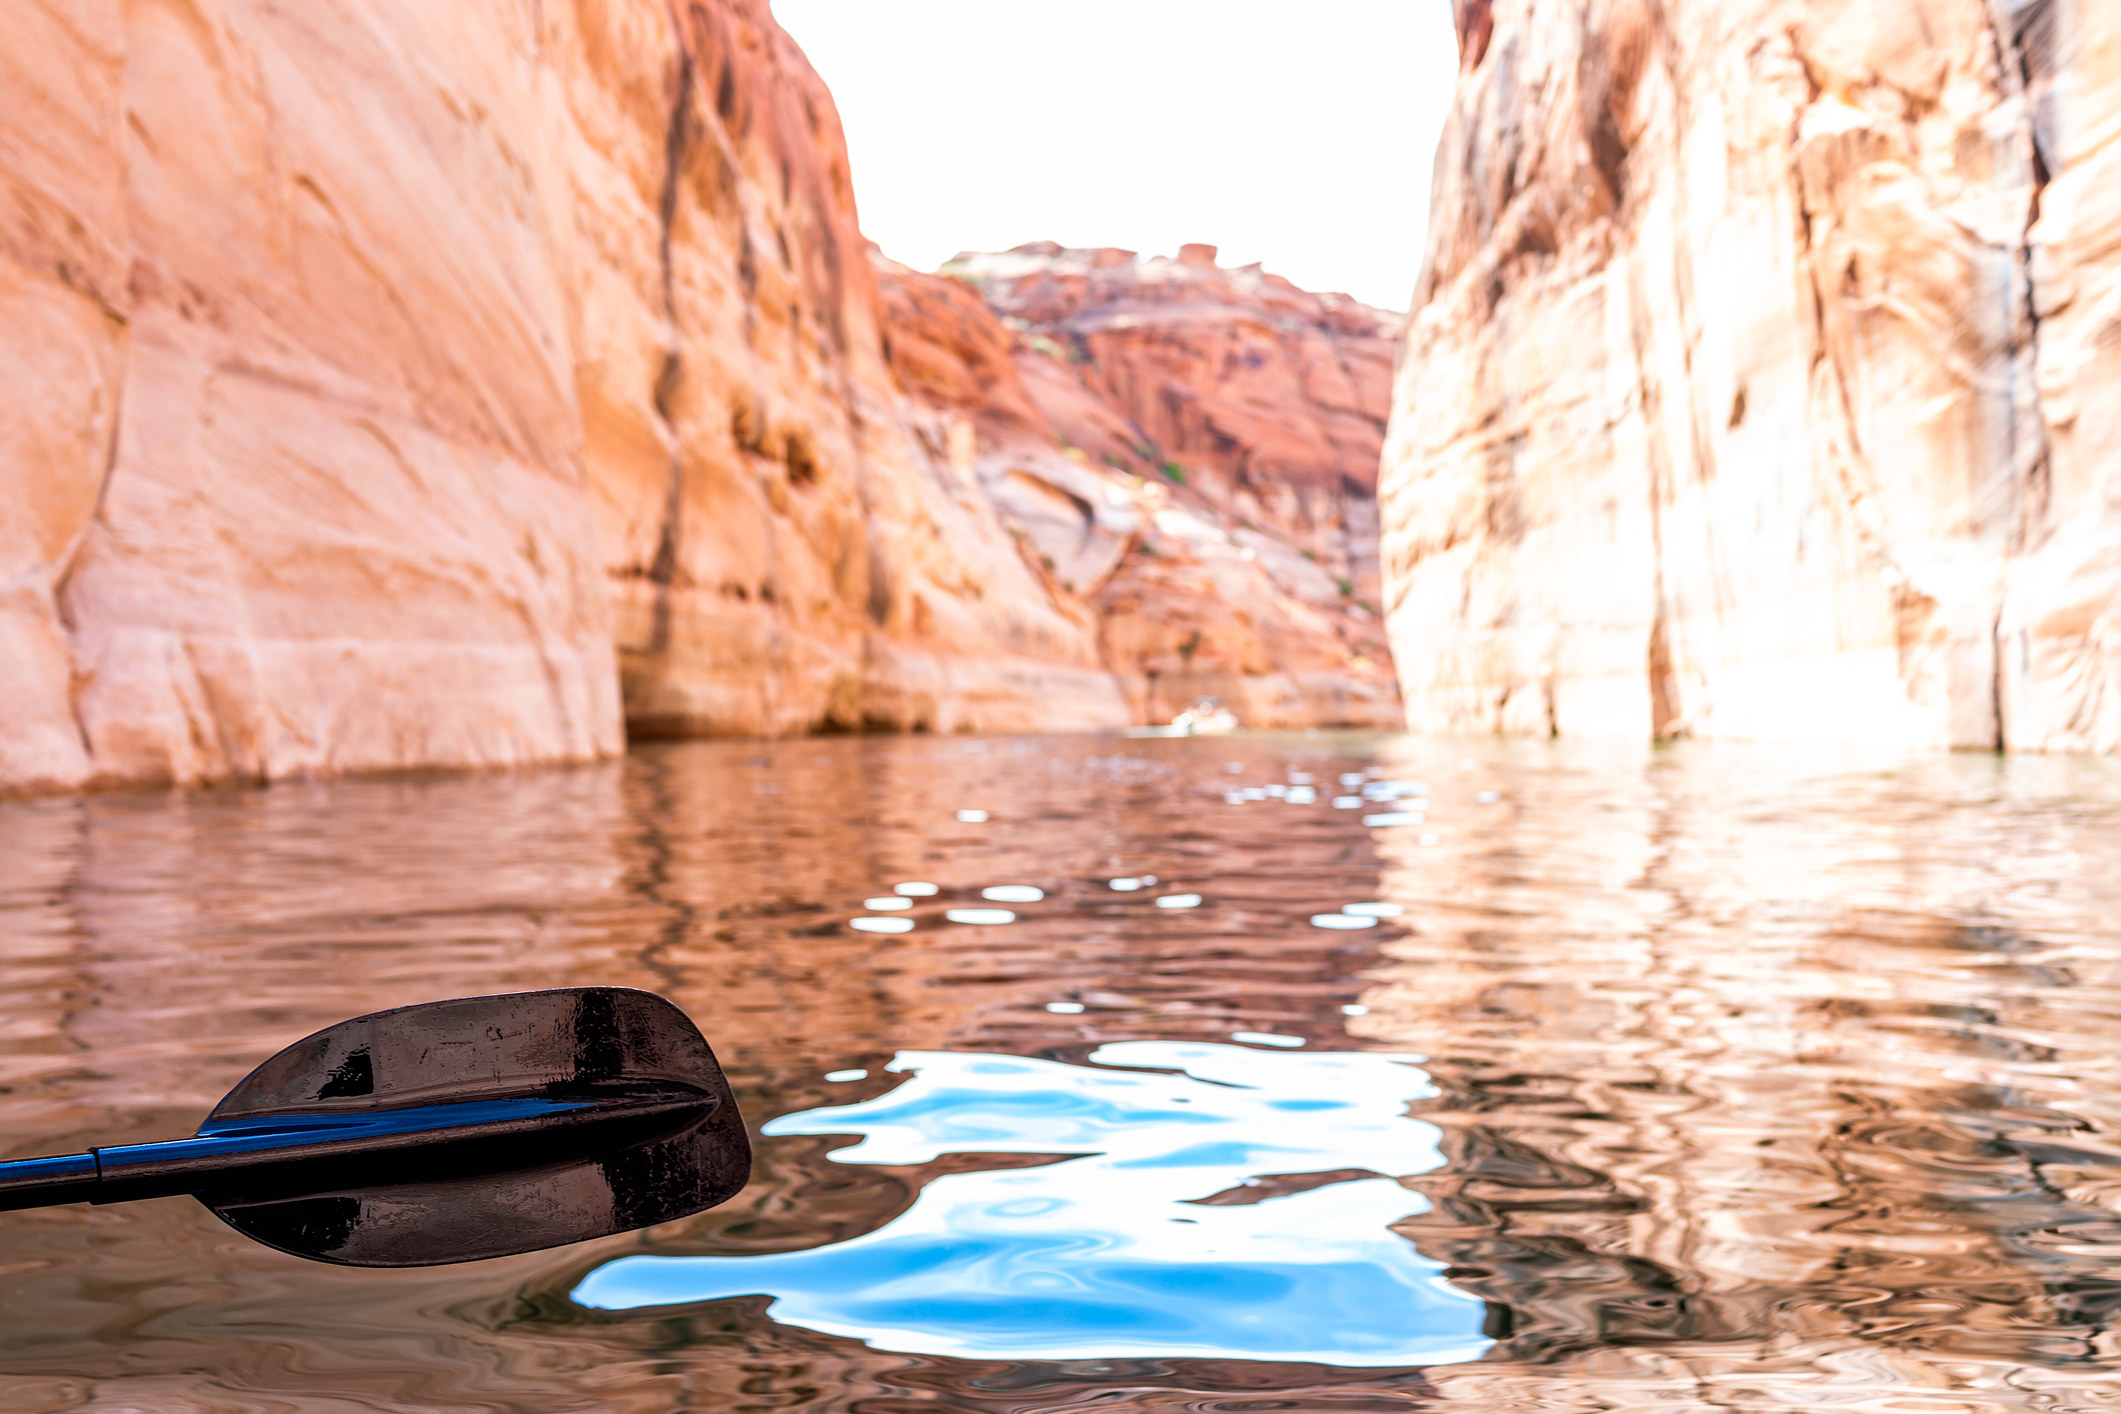 a kayak paddle in the water, a narrow river surrounded by sandstone cliffs